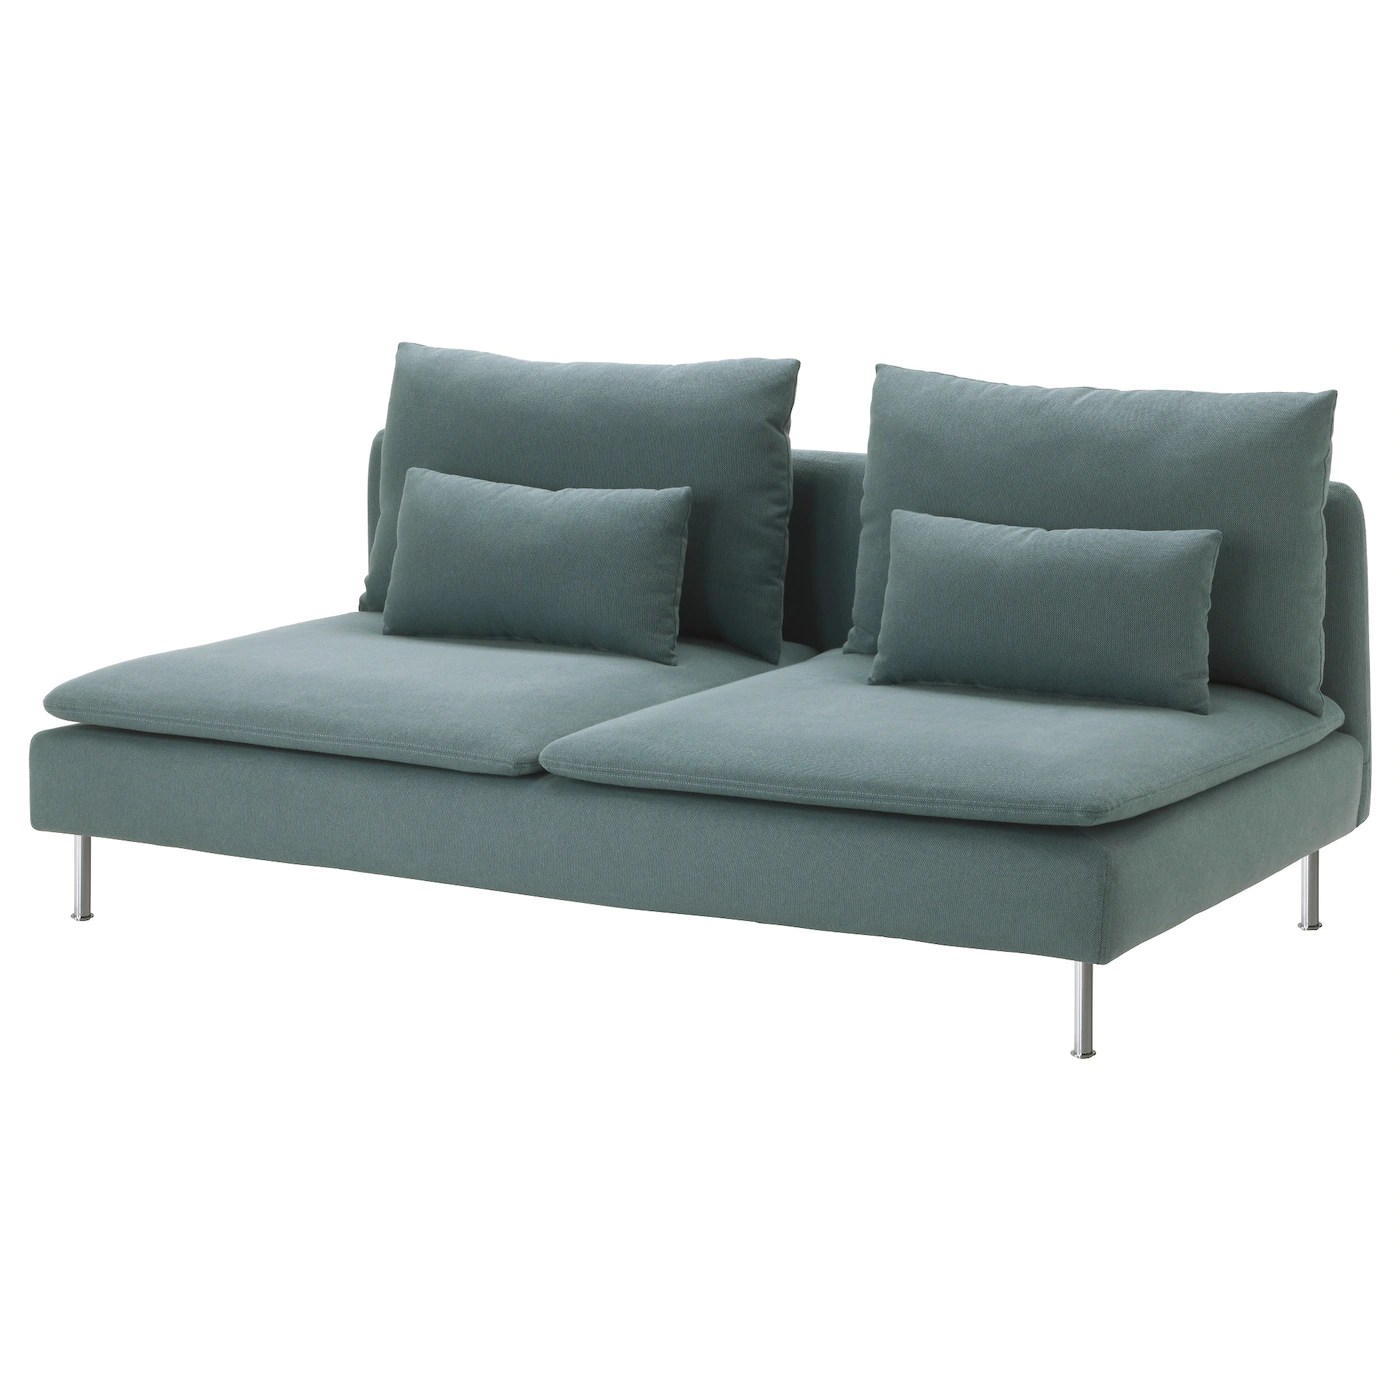 Sofa Uk Ikea Modular Sofas Sectional Sofas Ikea